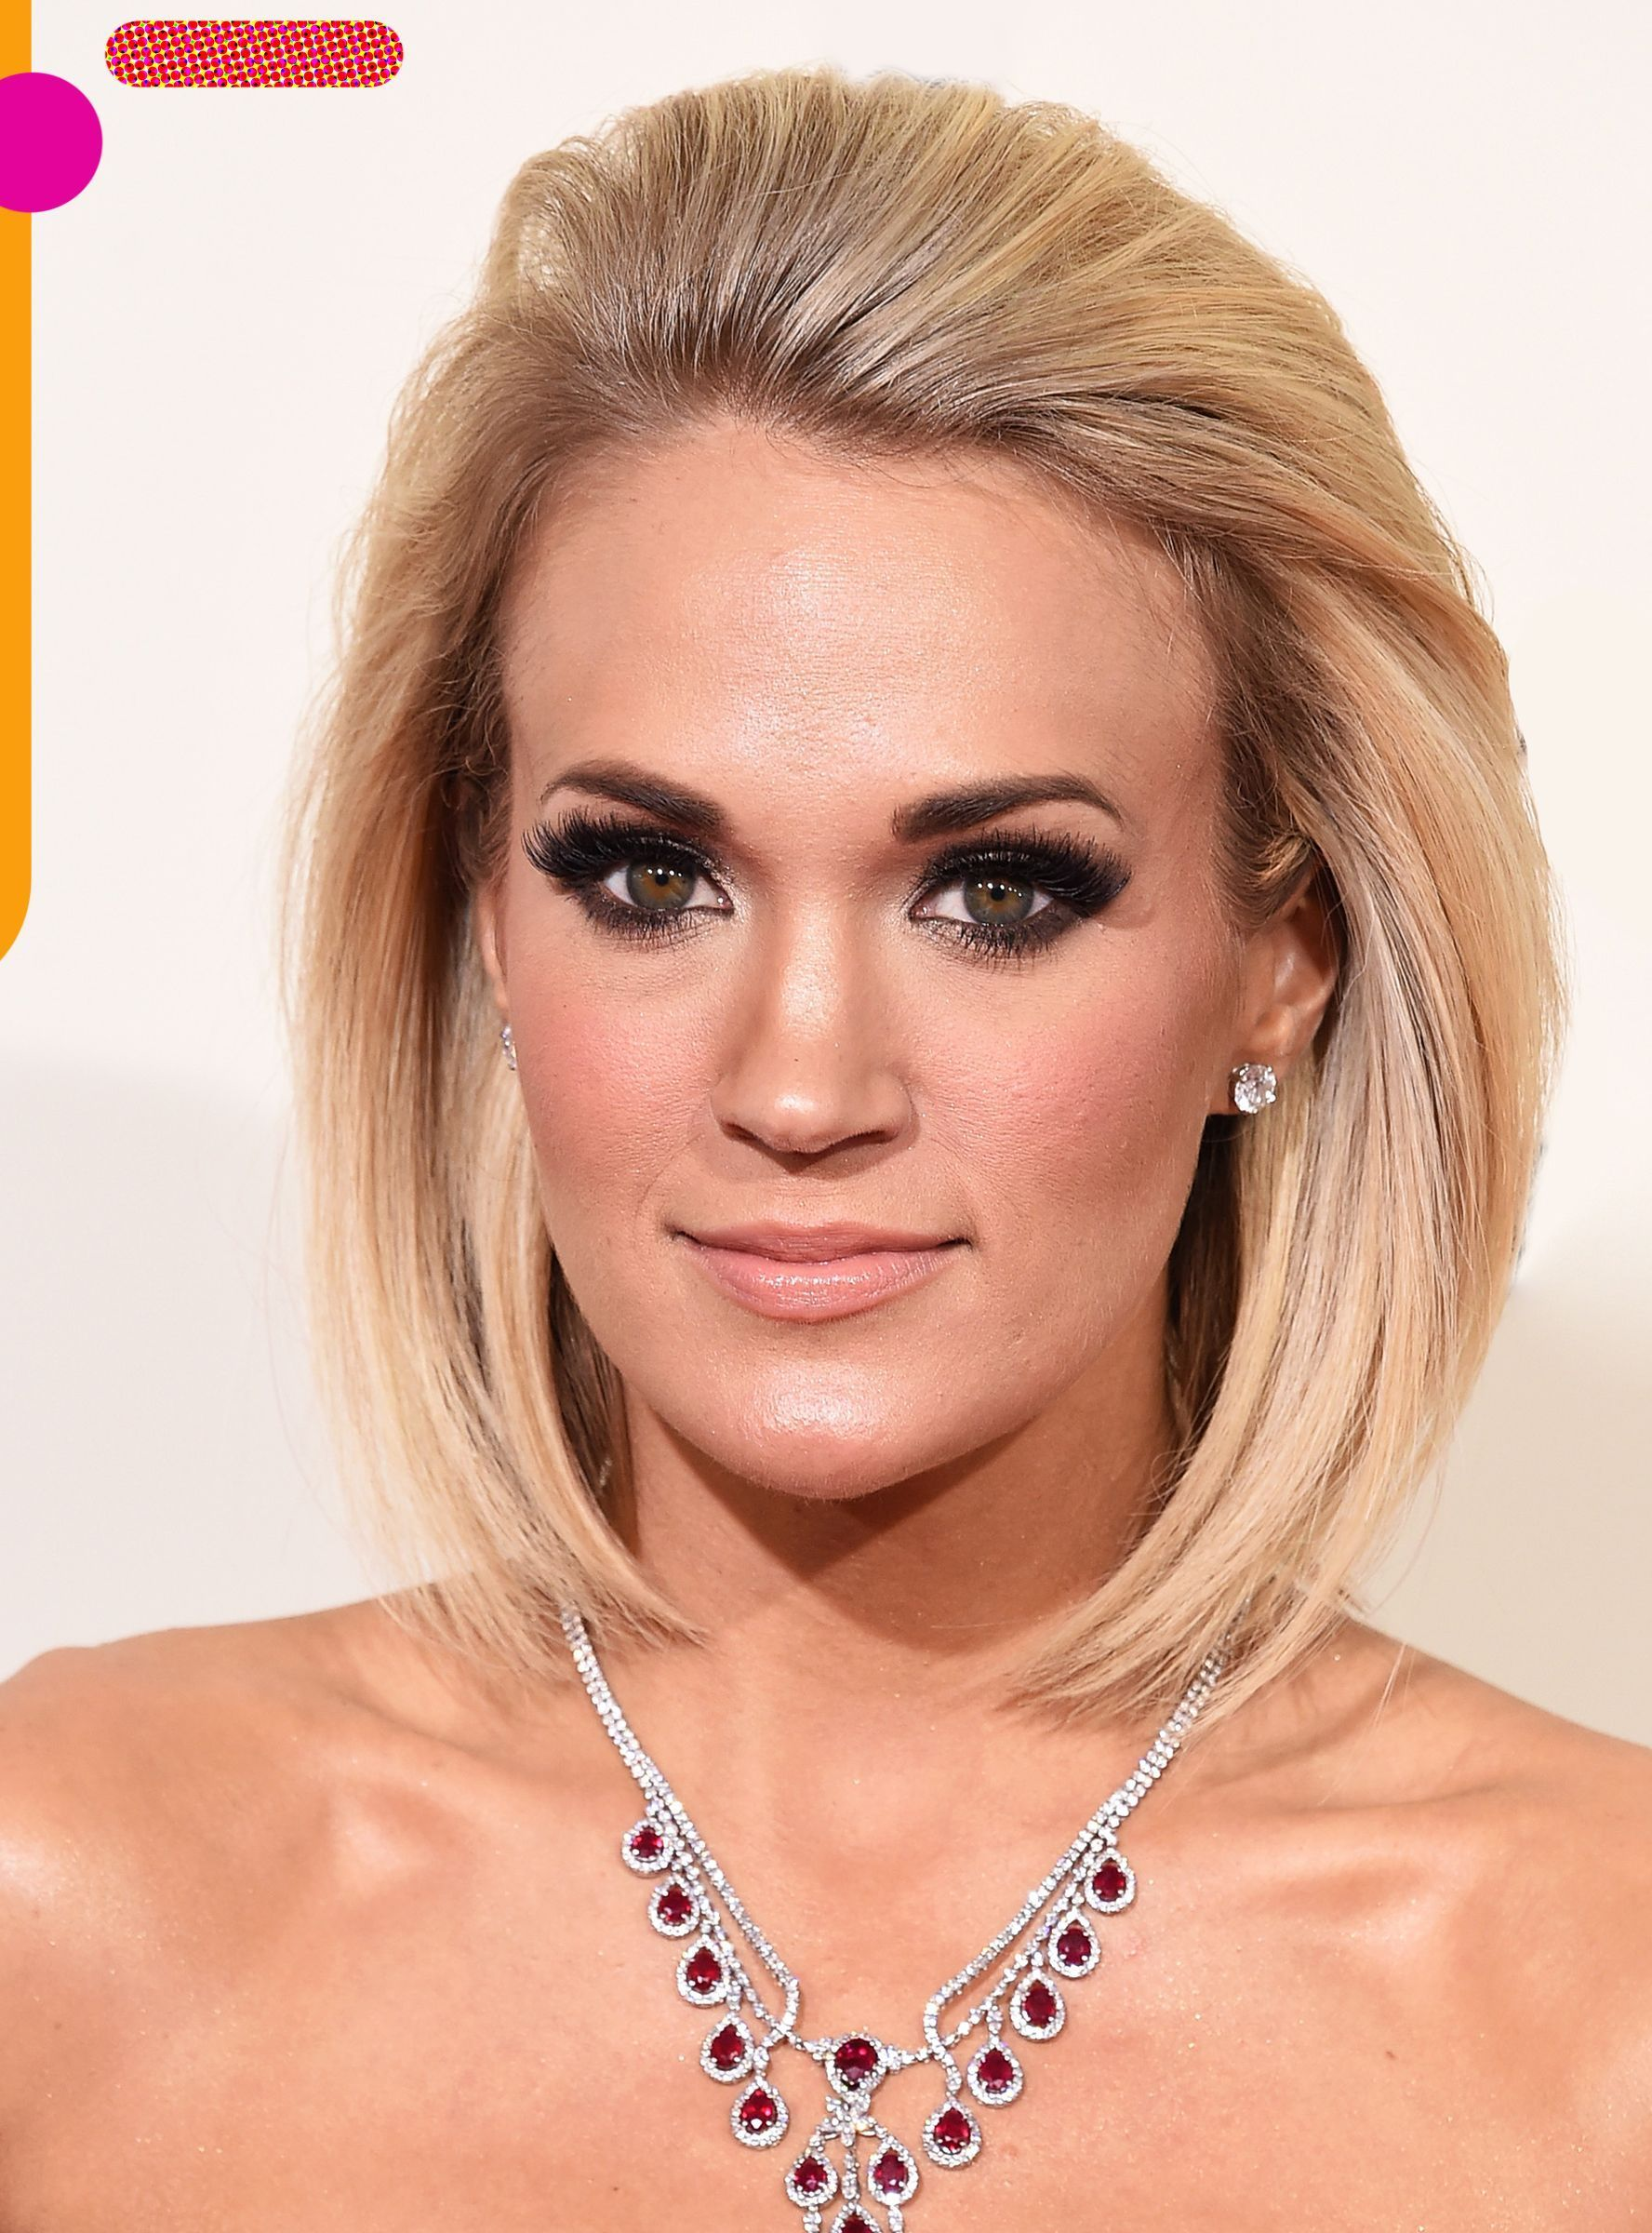 Carrie Underwood opens up about the face scar that changed